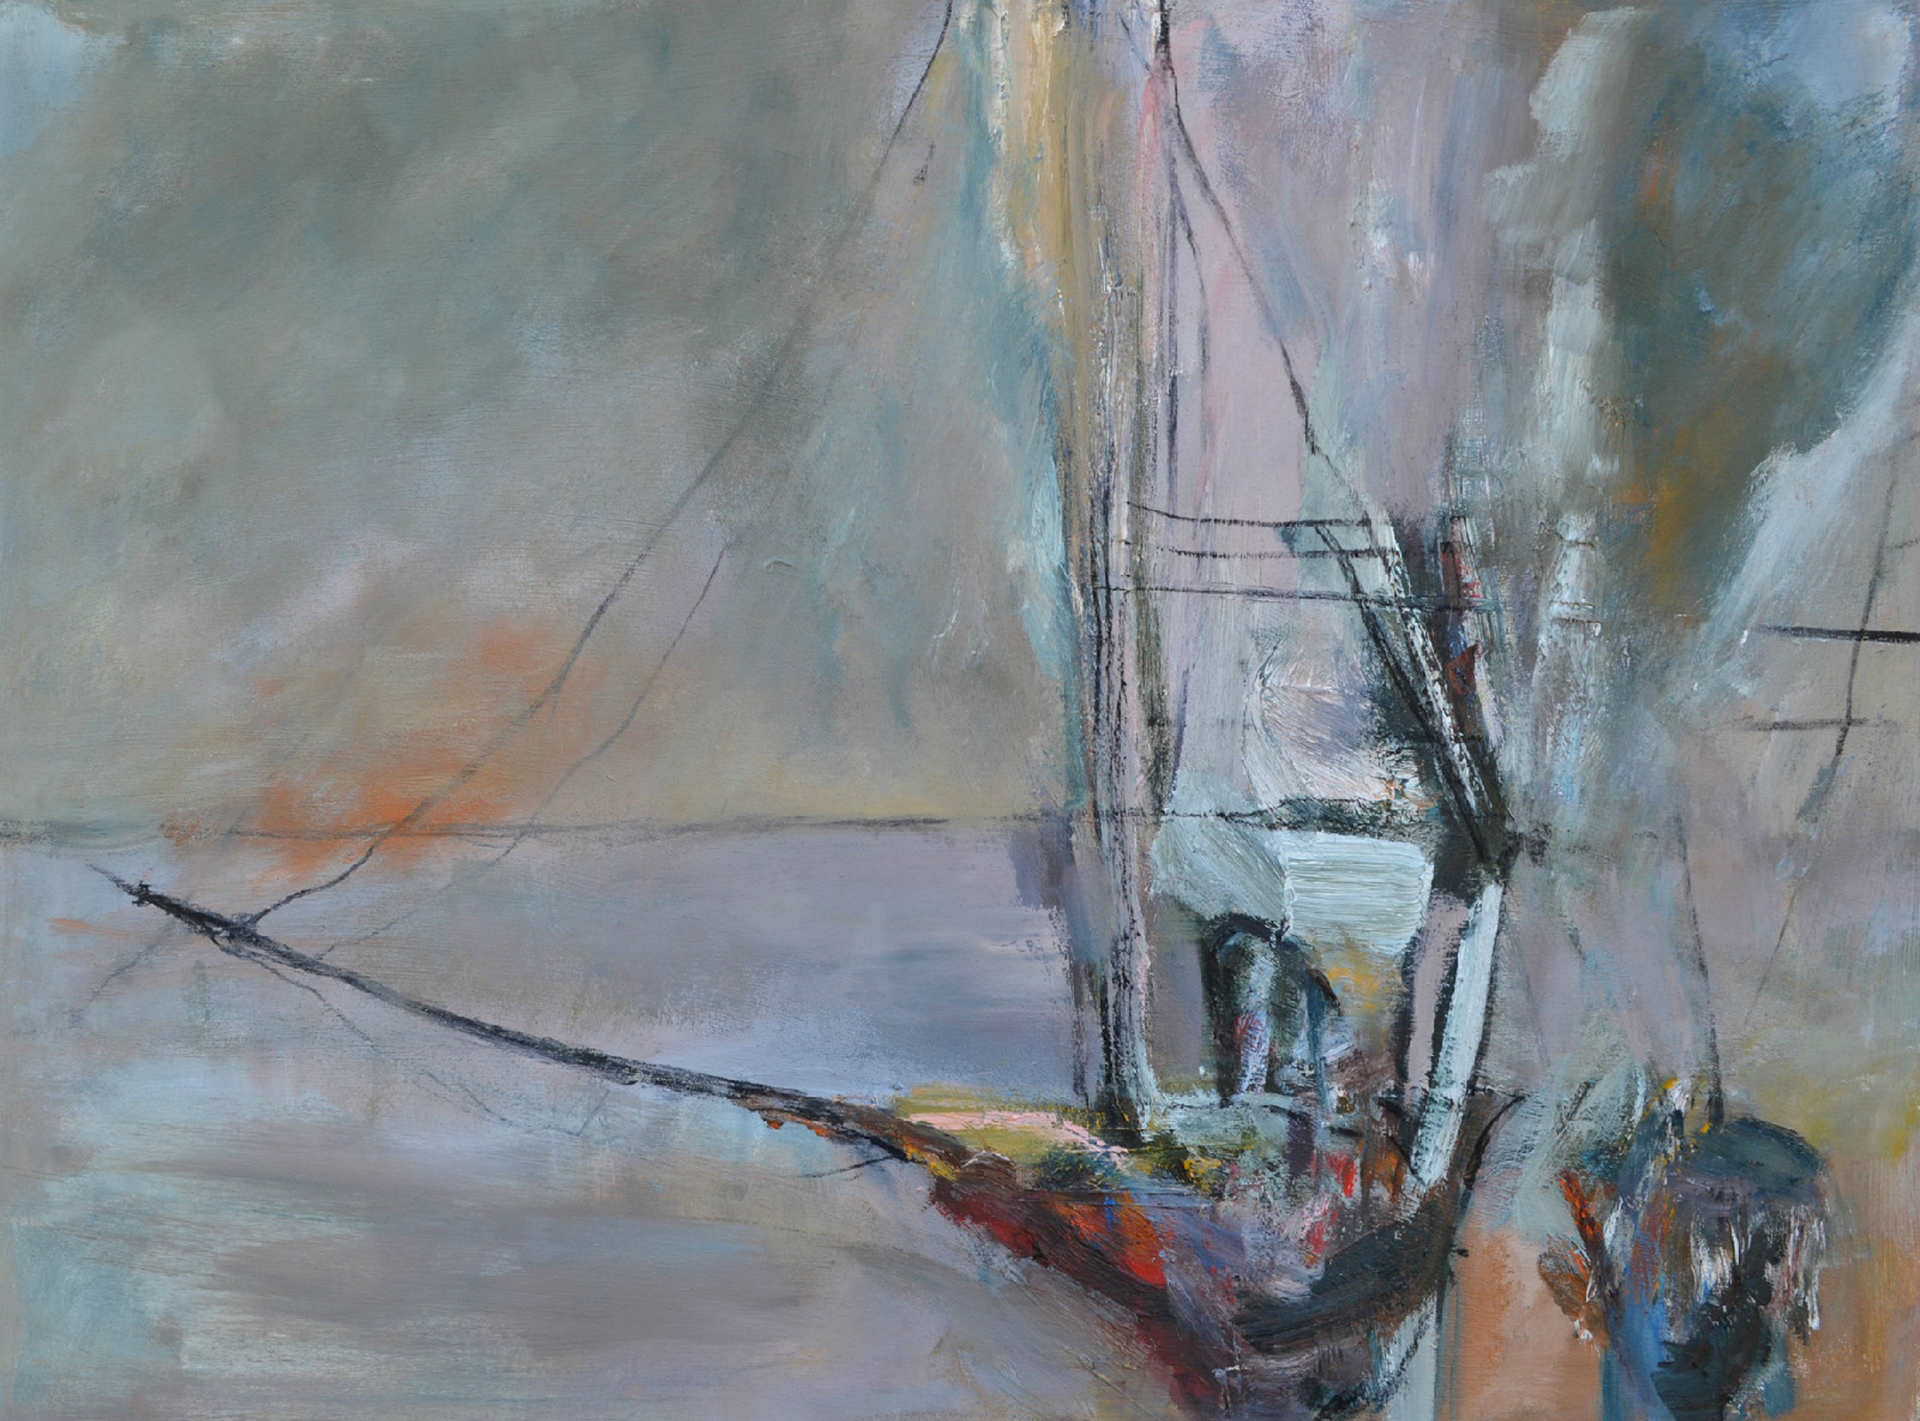 Vessels | Oil on canvas | 32